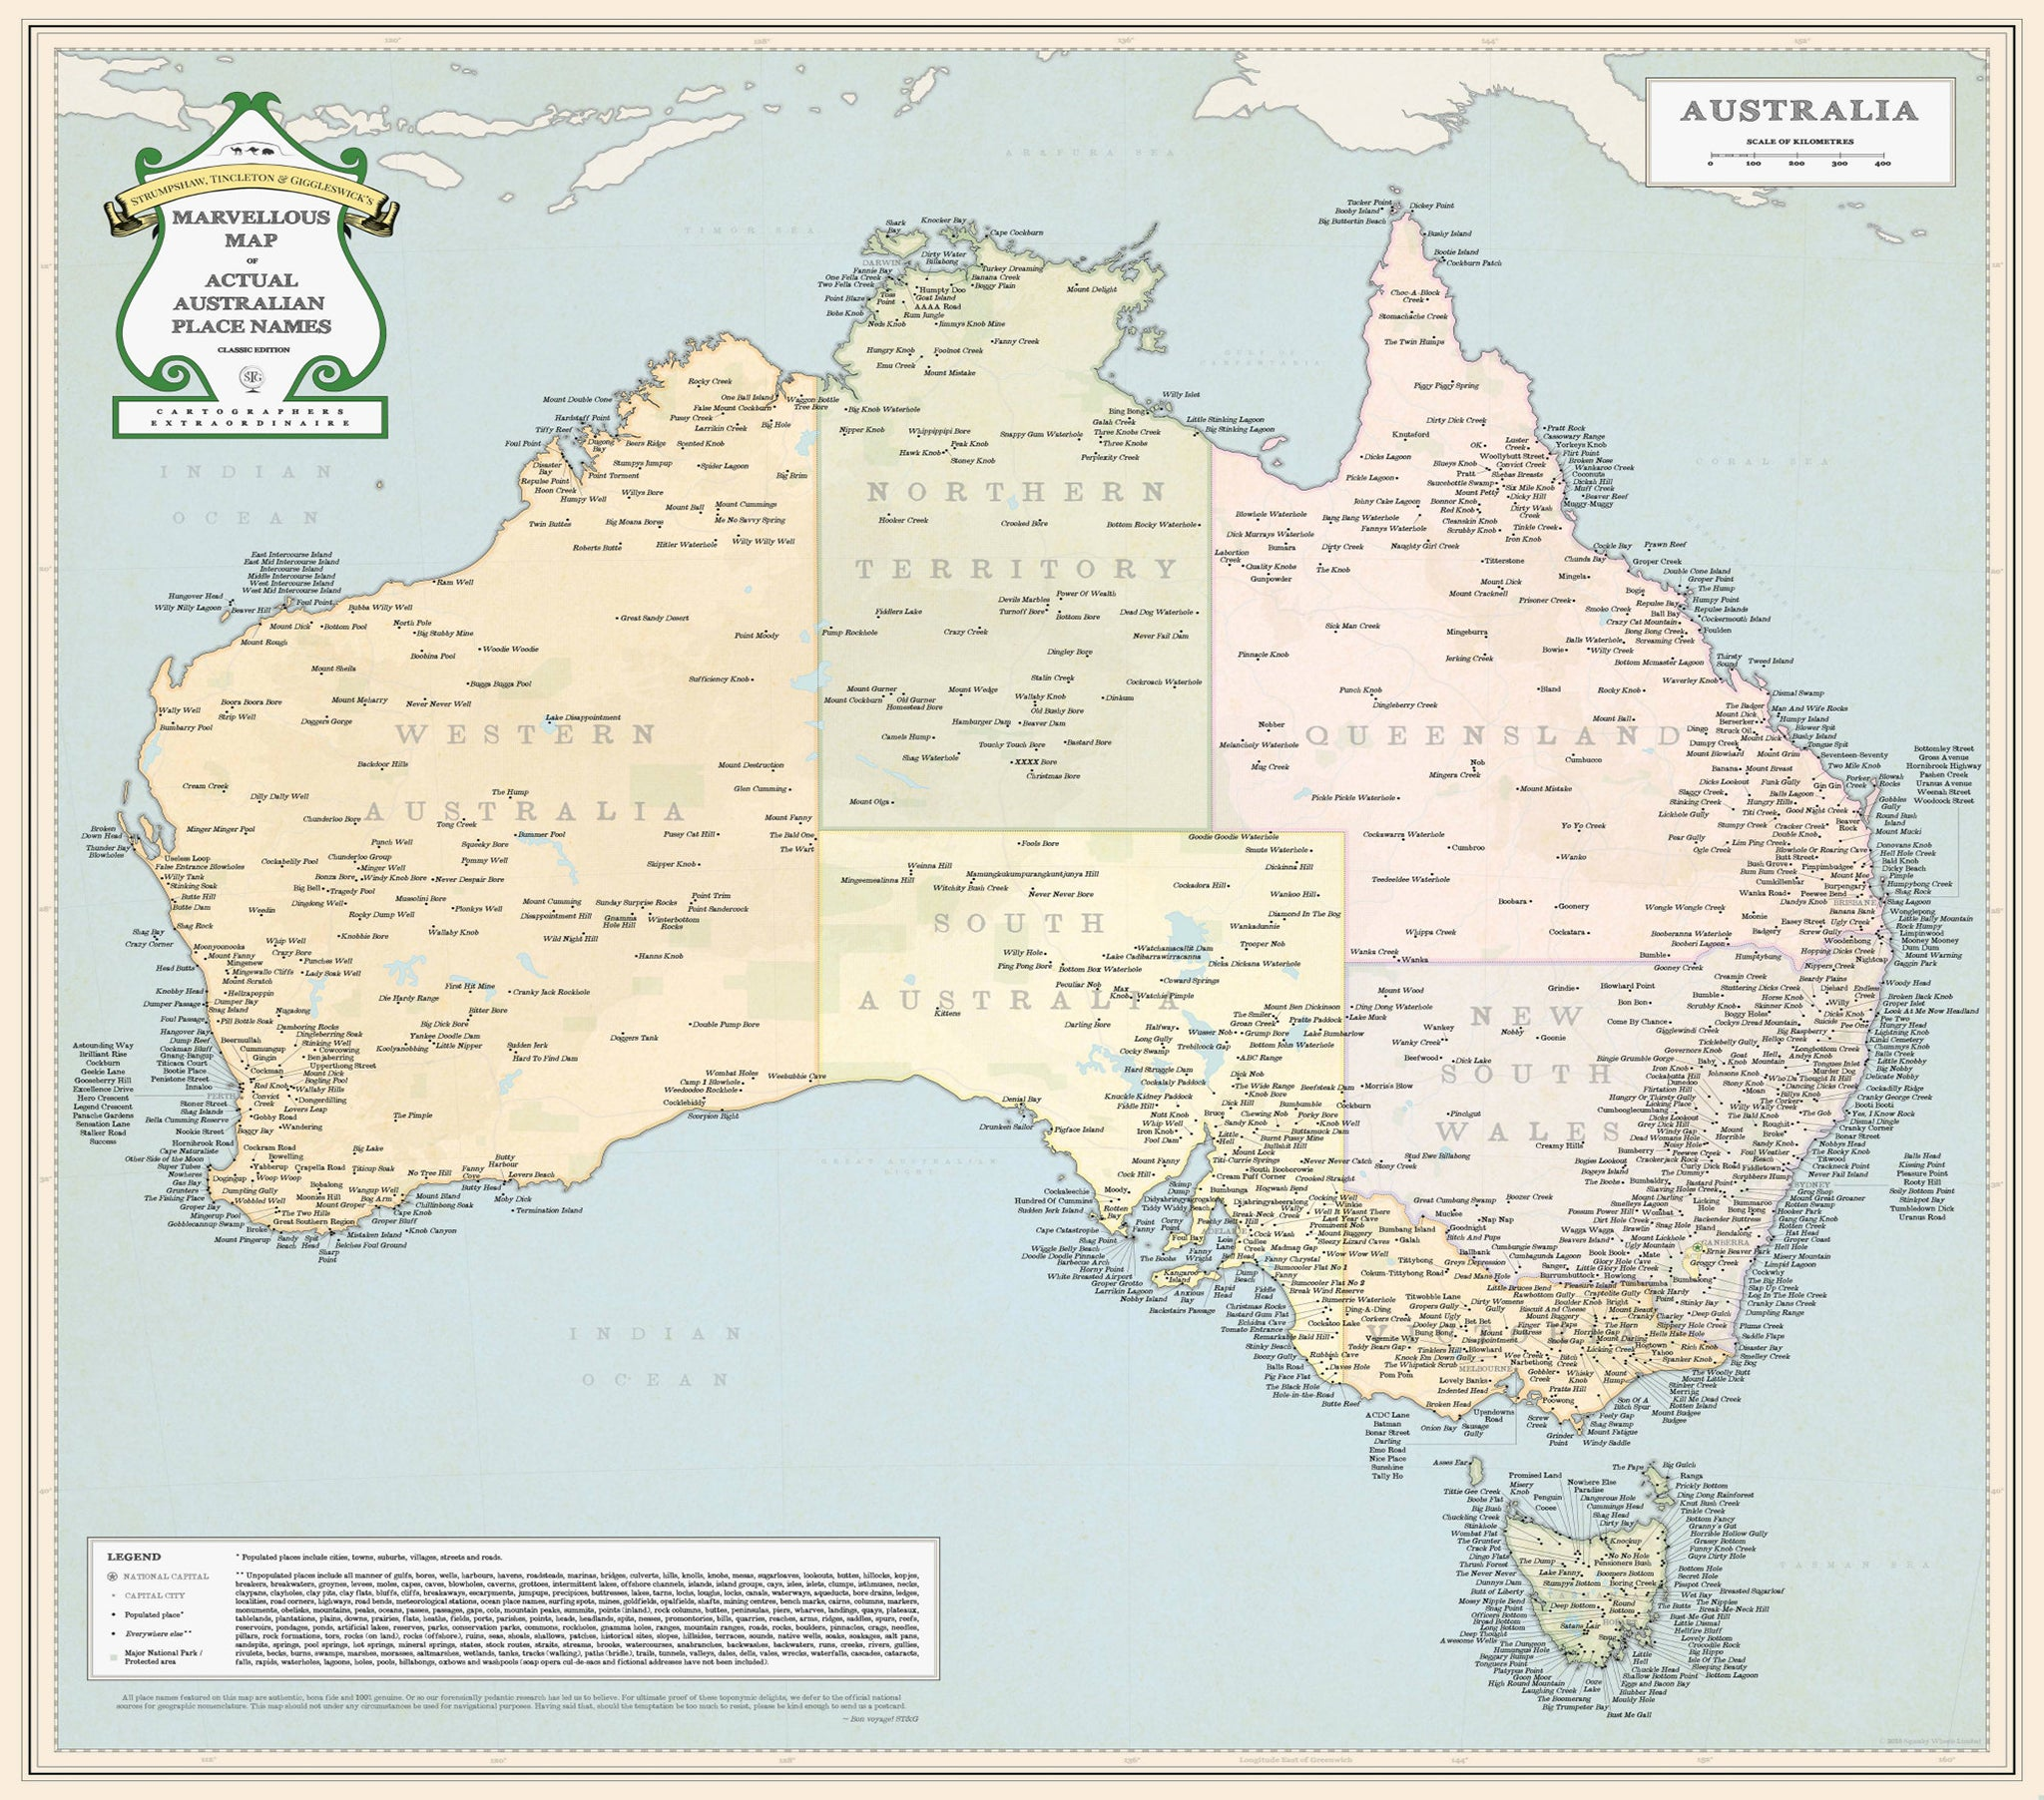 Buy Marvellous Map of Actual Australian Place Names - Mapworld